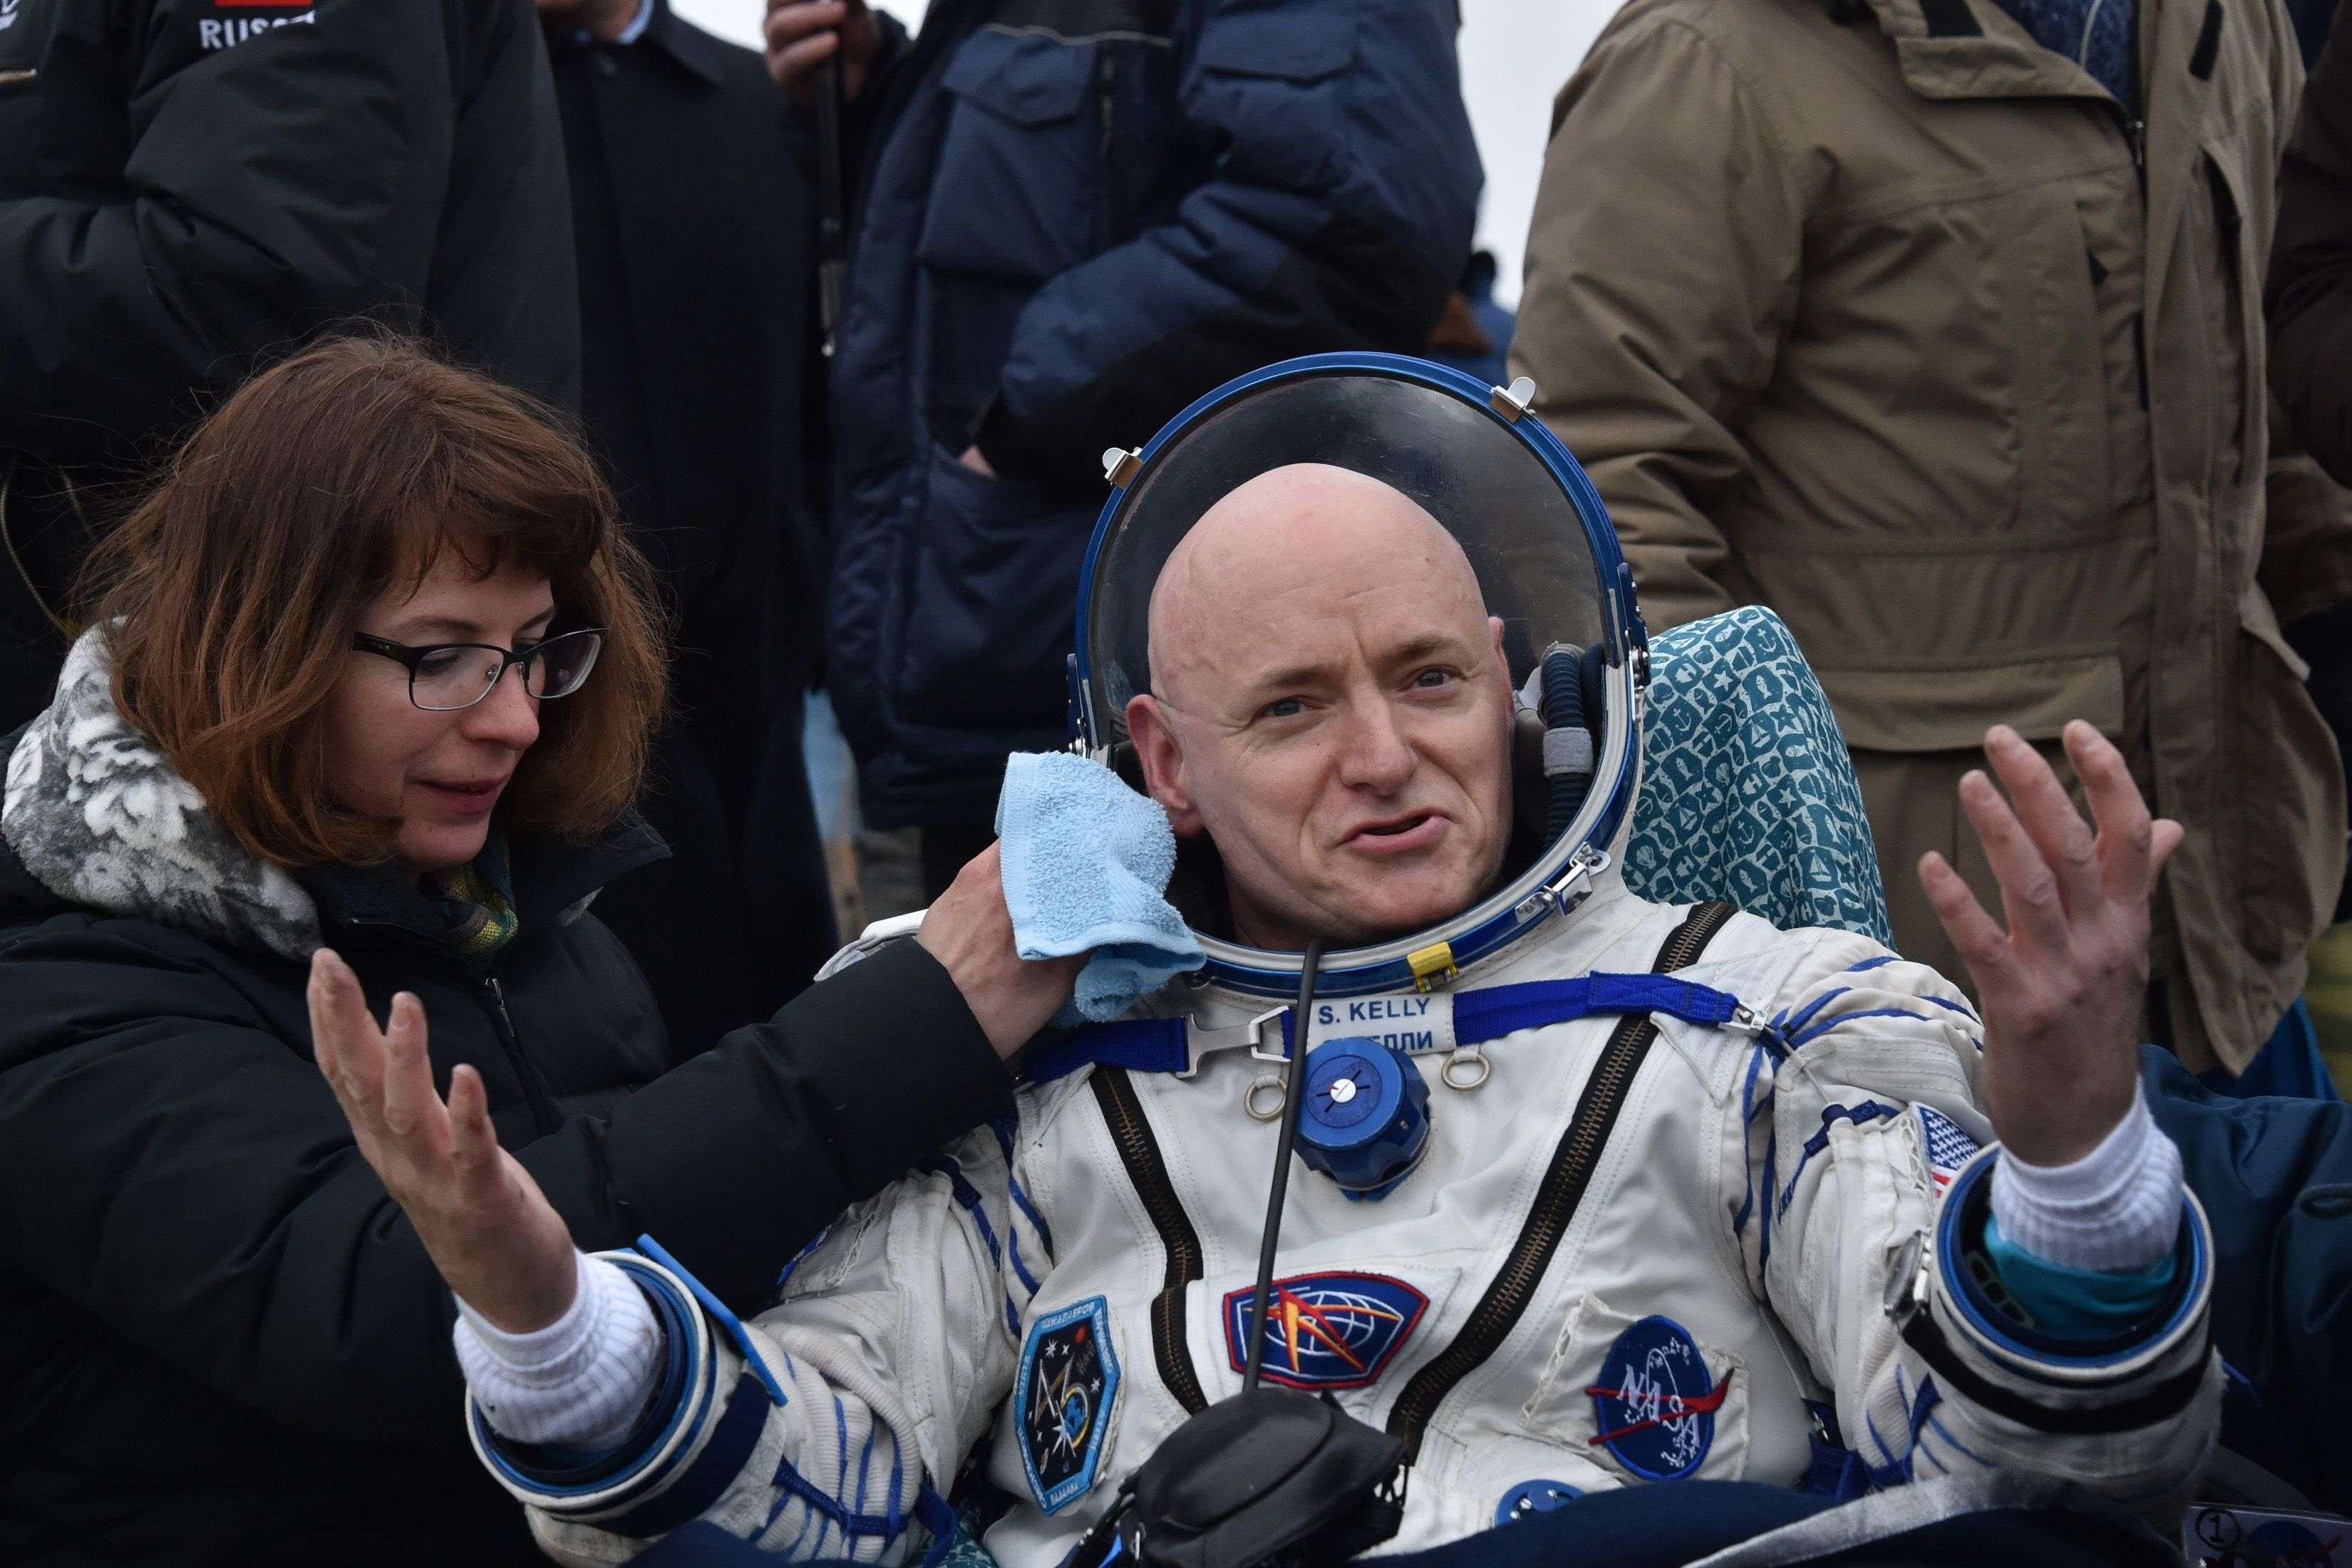 File photo of March 2016: International Space Station crew member Scott Kelly of the U.S. reacts after landing near the town of Dzhezkazgan after spending almost a year in space.